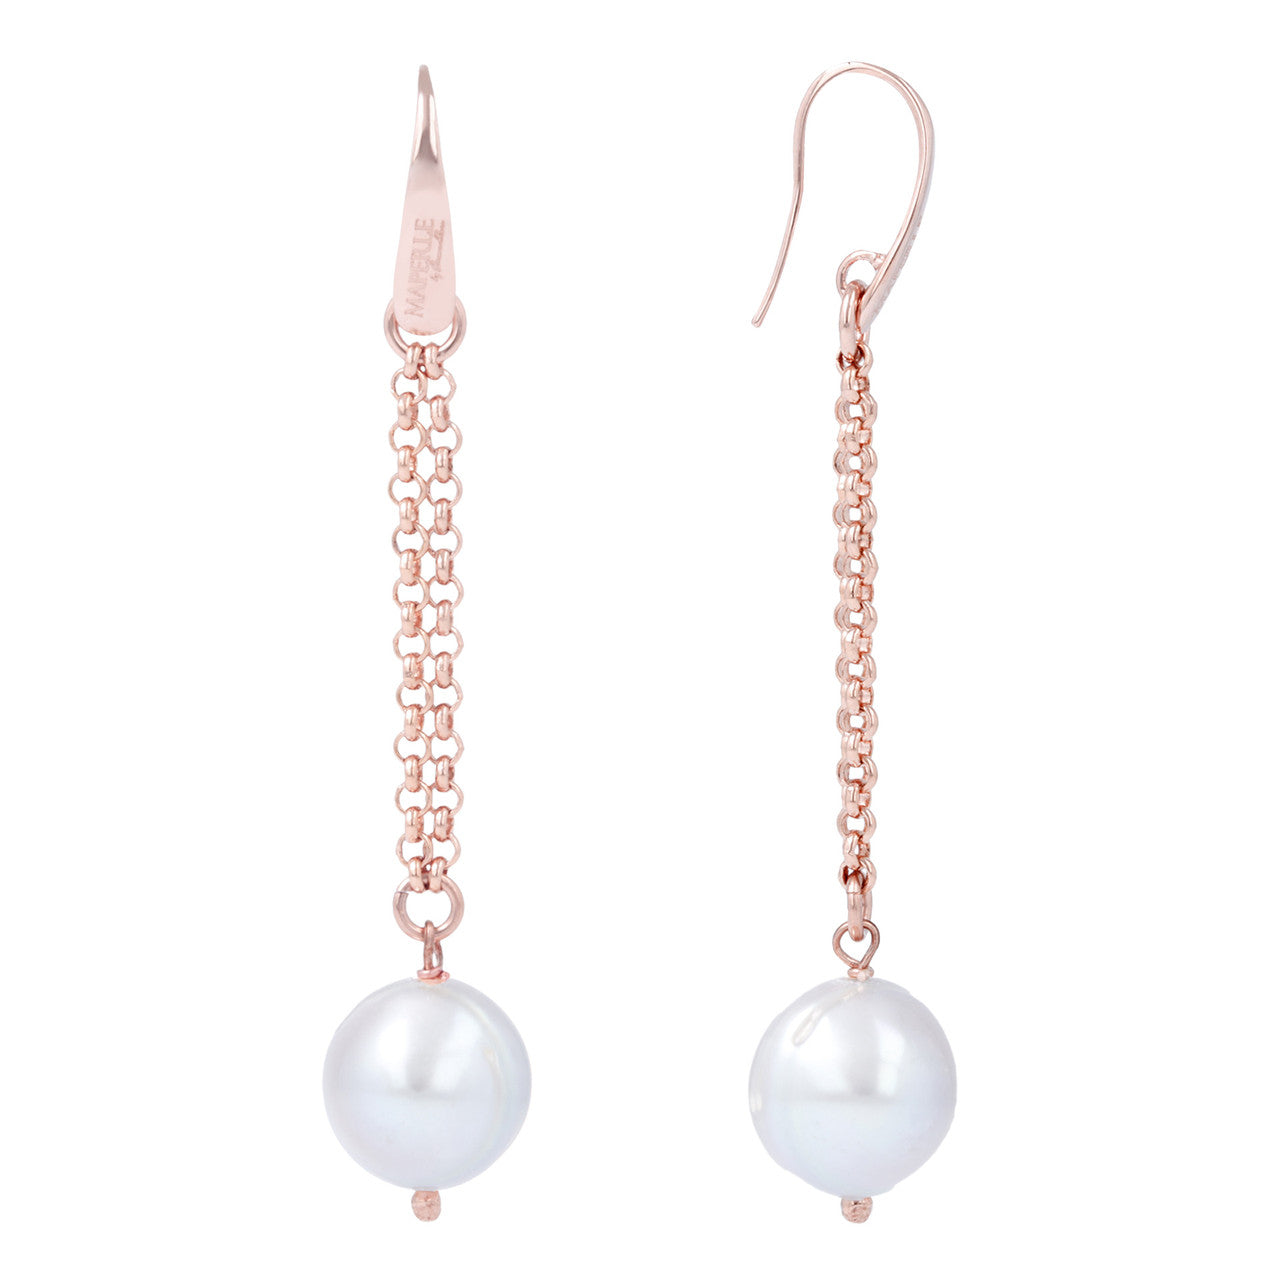 Dangling pearl earrings front and side